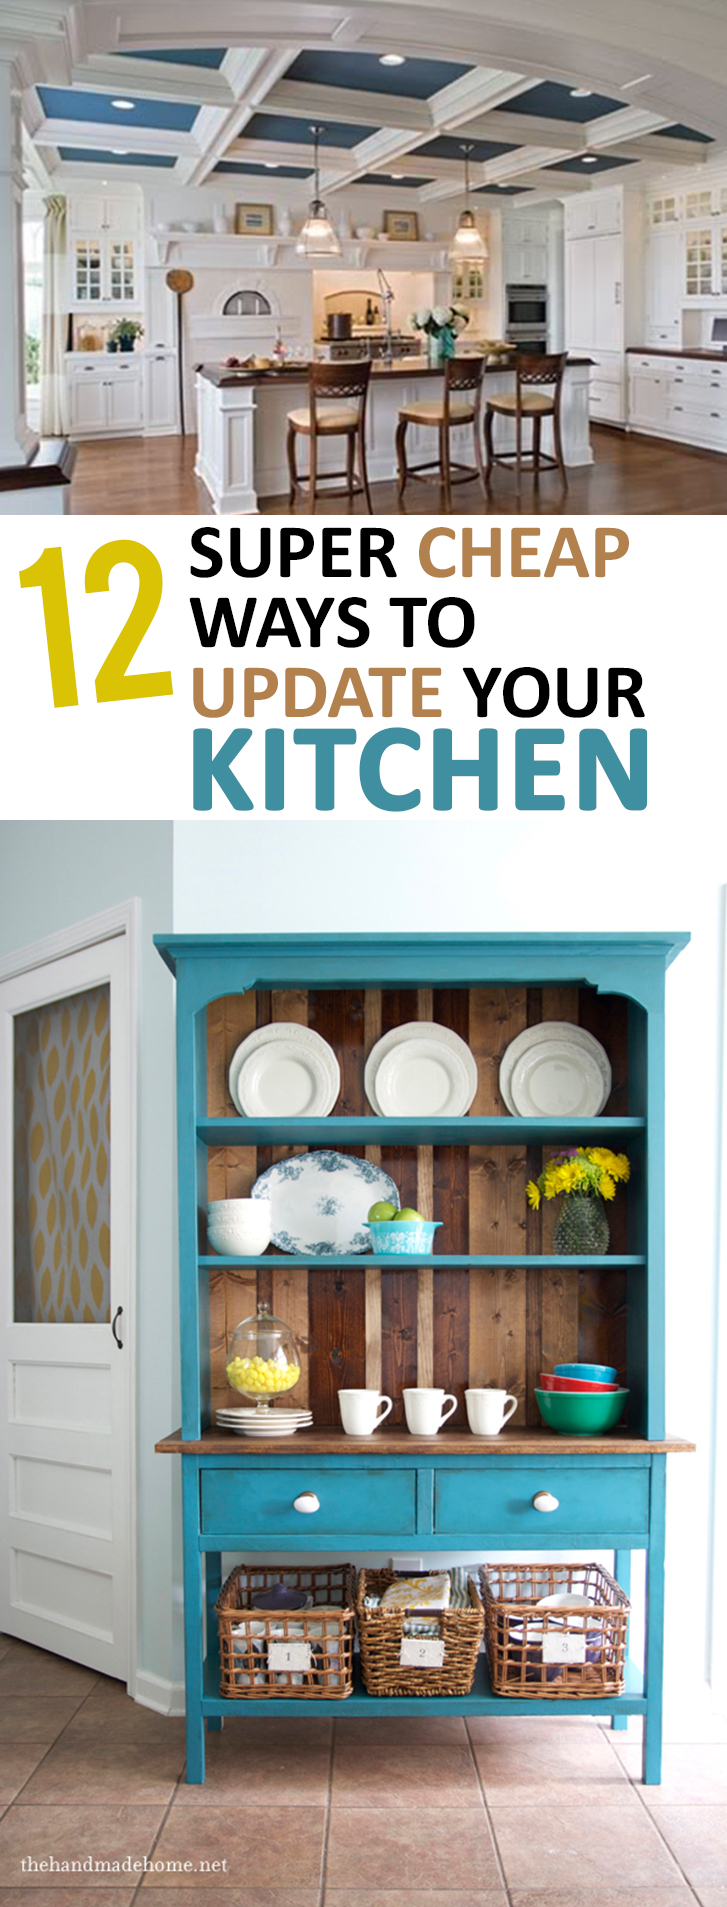 12 super cheap ways to update your kitchen for Cheap and easy kitchen remodeling ideas